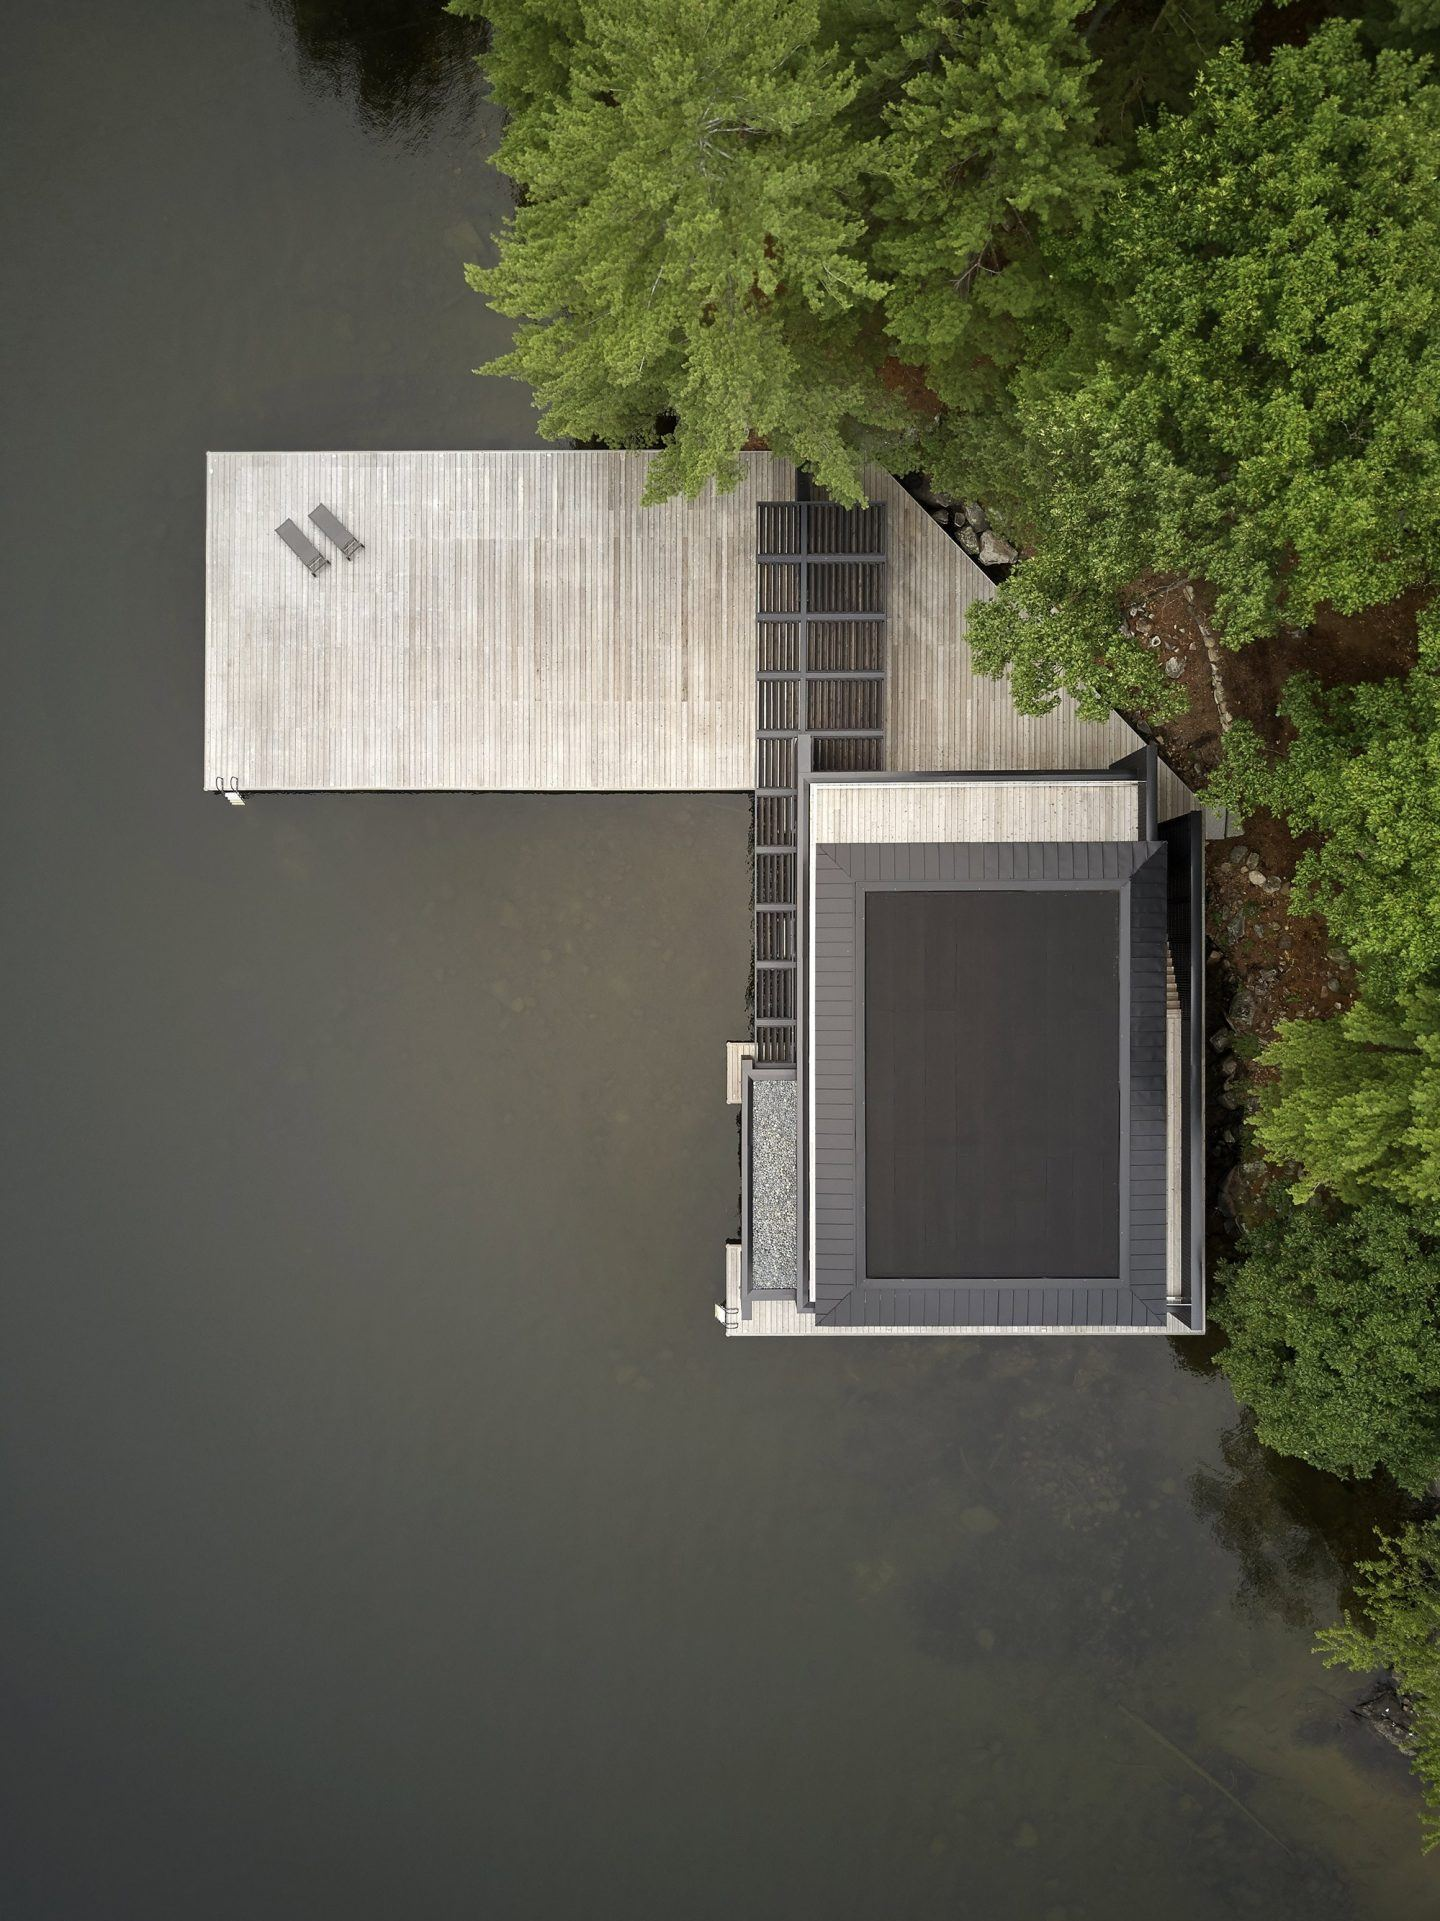 IGNANT-Architecture-Muskoka-Boathouse-3